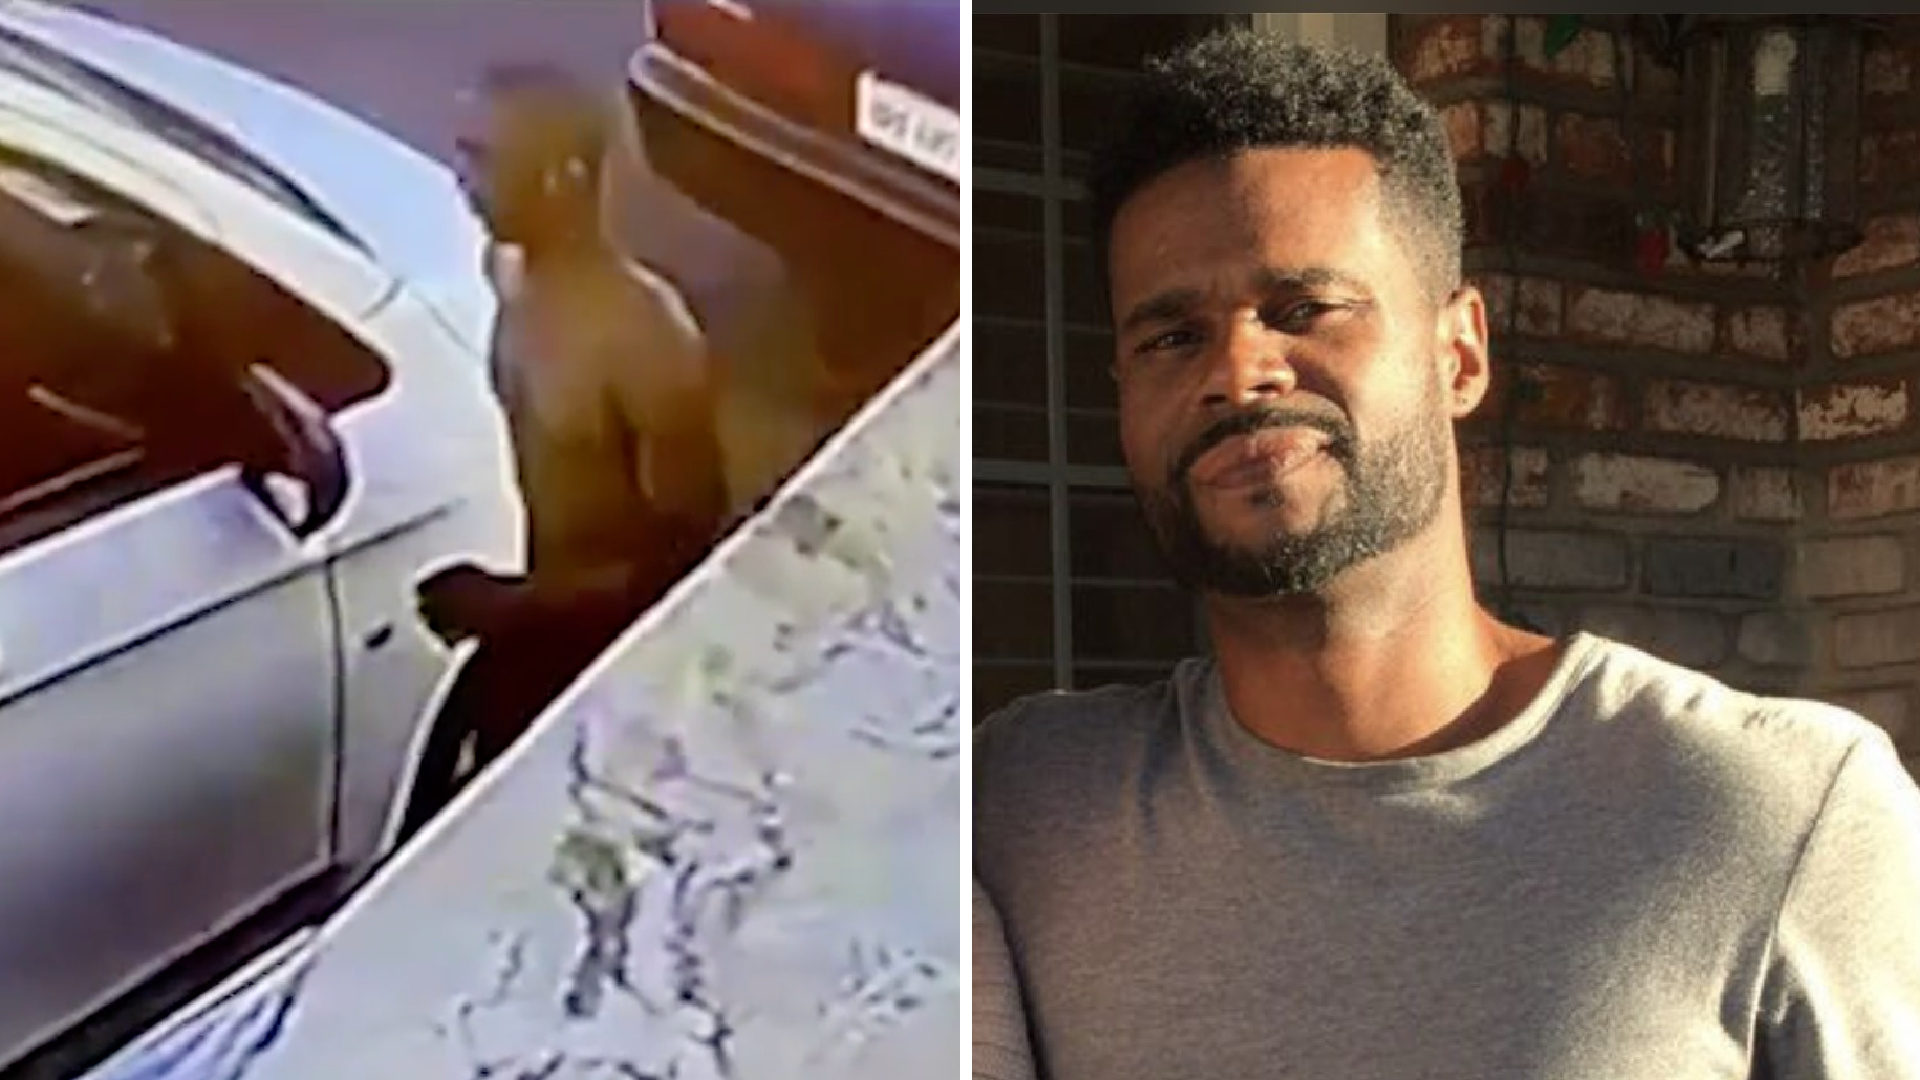 On the right, Branden Finley, 46, is seen in an undated photo provided by friends. On the left, a surveillance video from LAPD shows the person suspected of killing him in a hit-and-run crash.